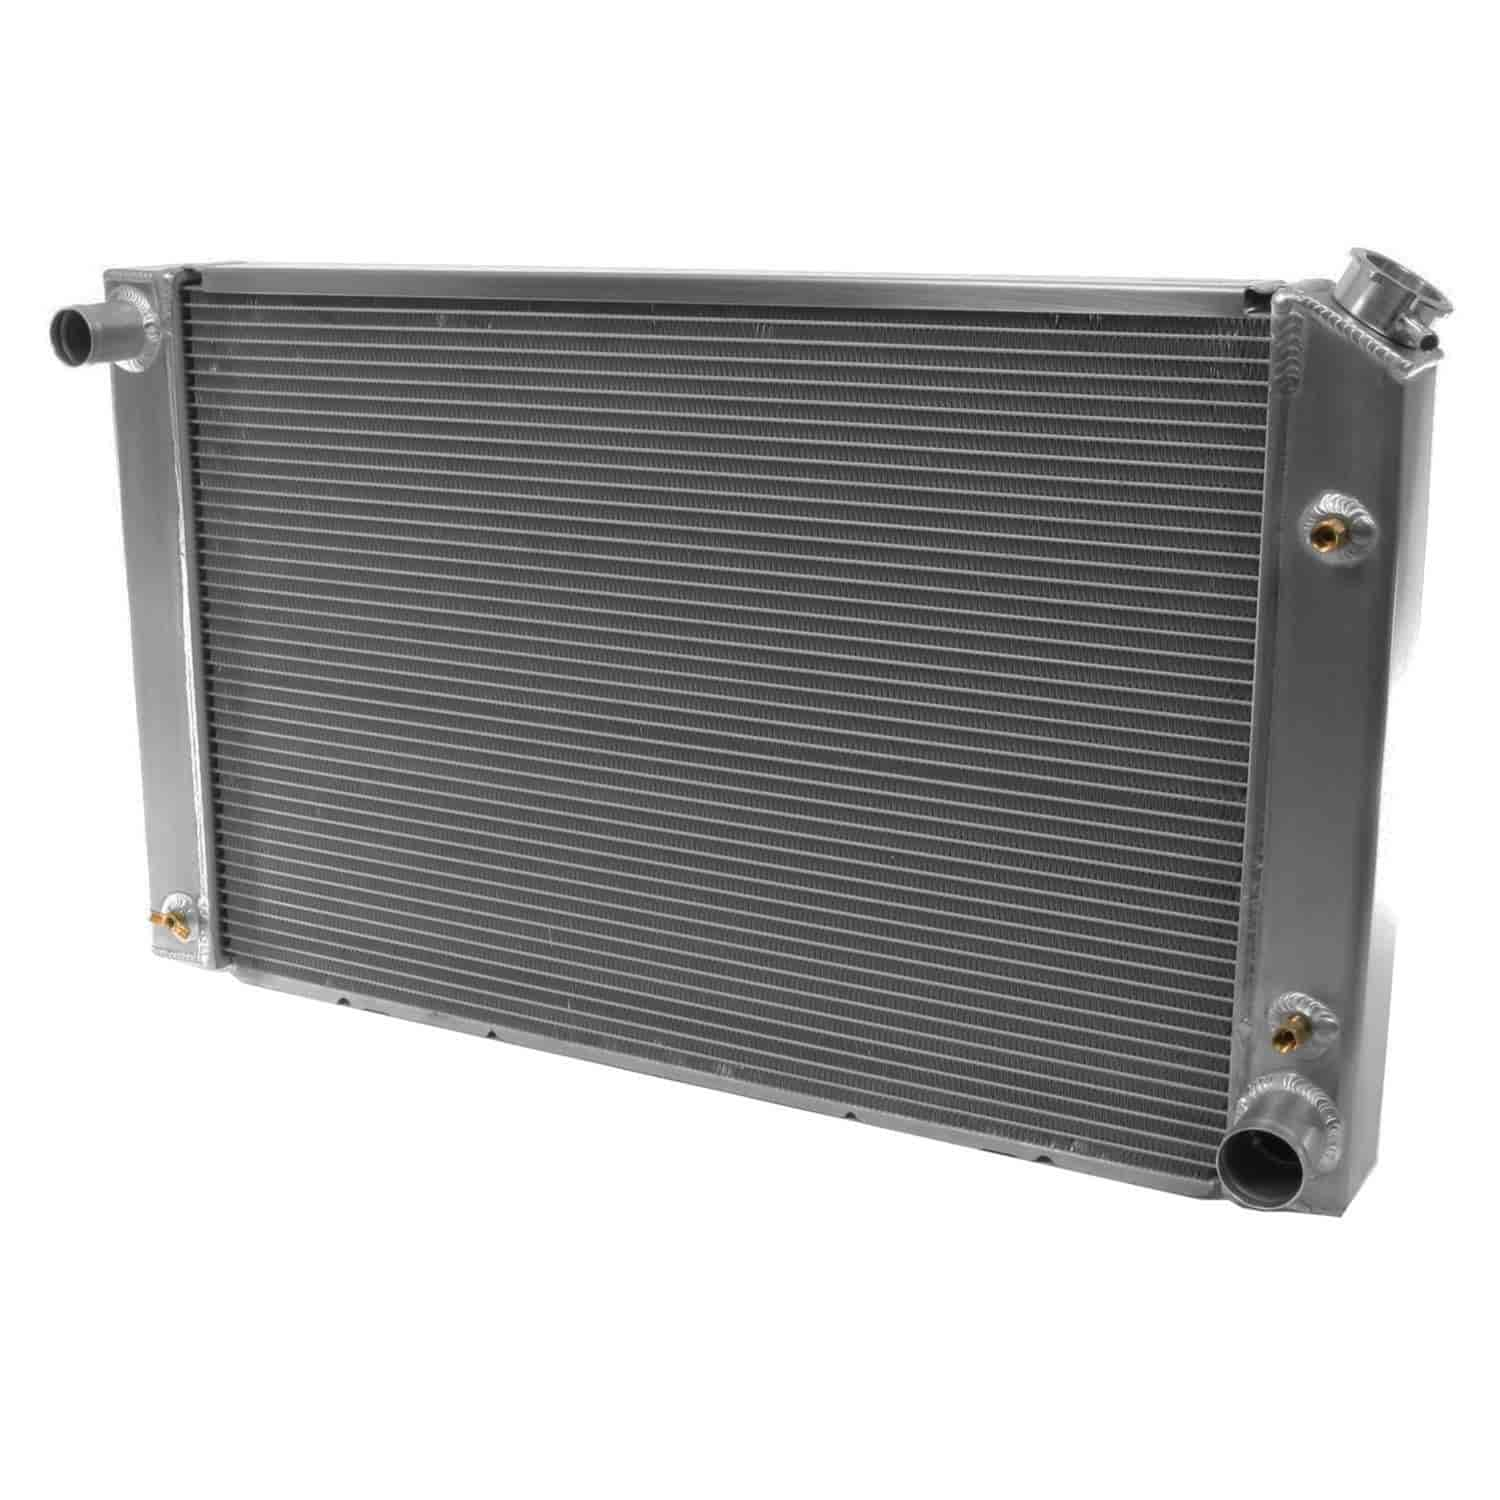 Be Cool Radiators 12008 - Be Cool Aluminator Series Direct-Fit Aluminum Radiators